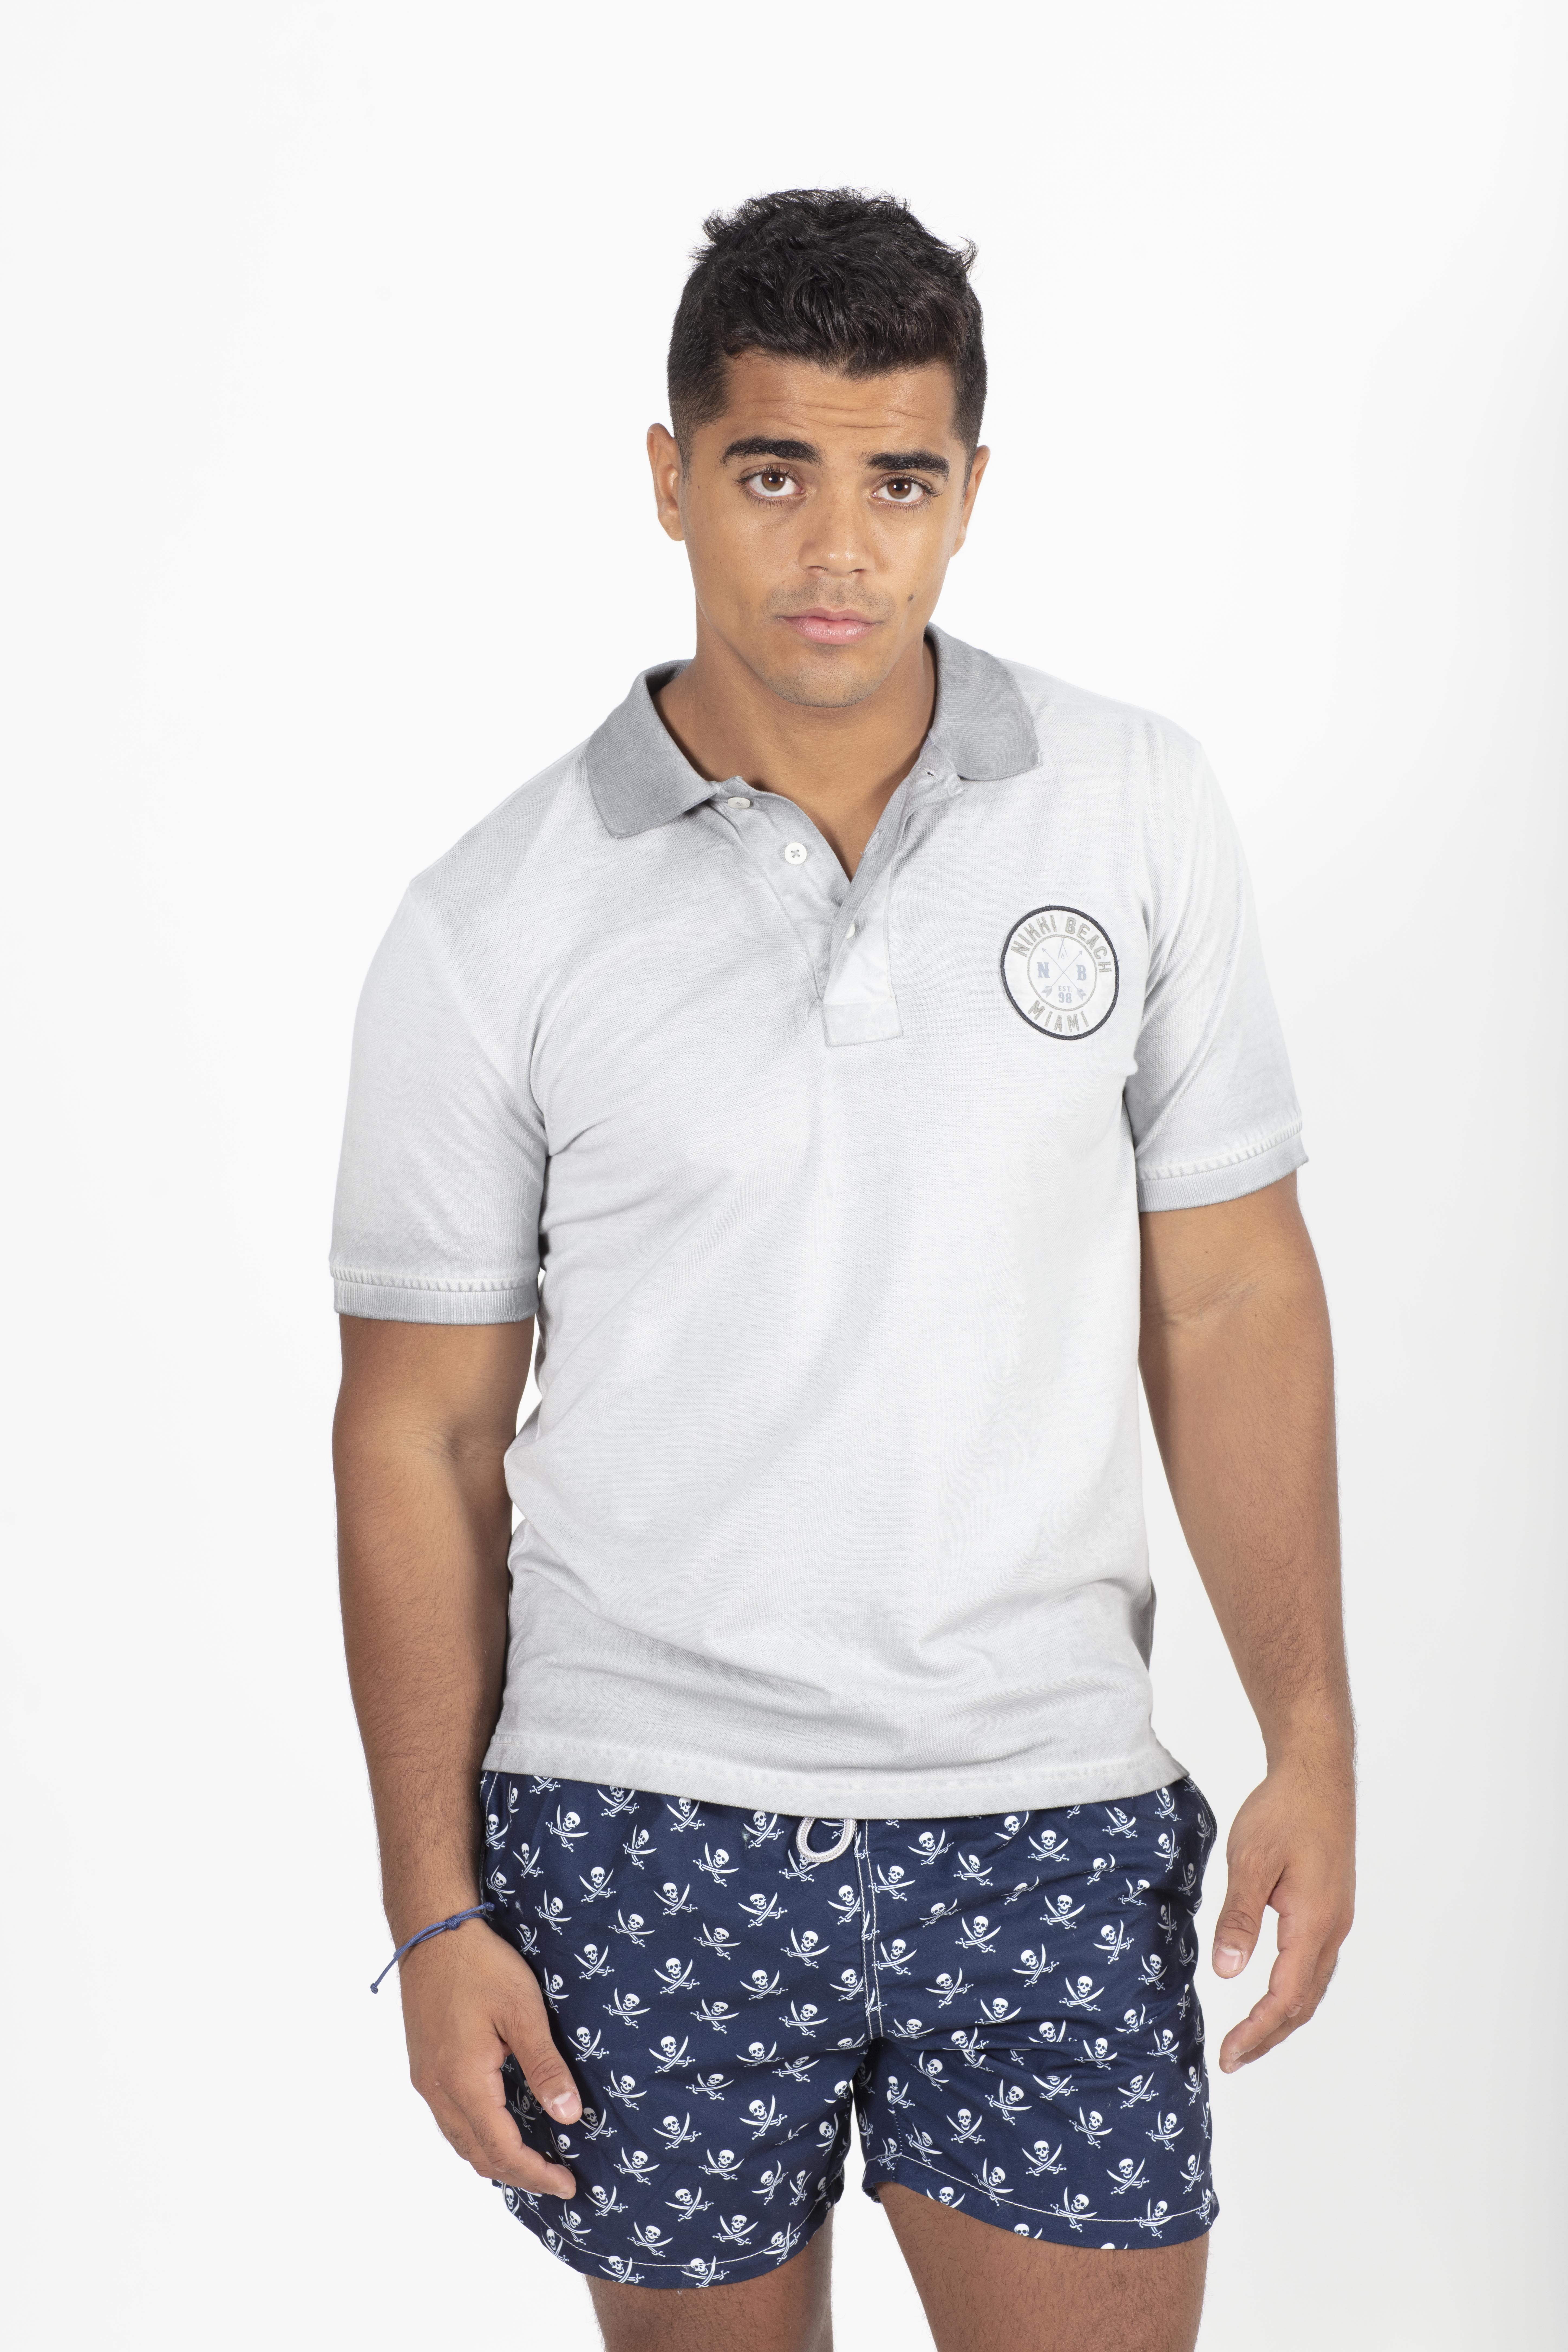 Men's Polo With Patch